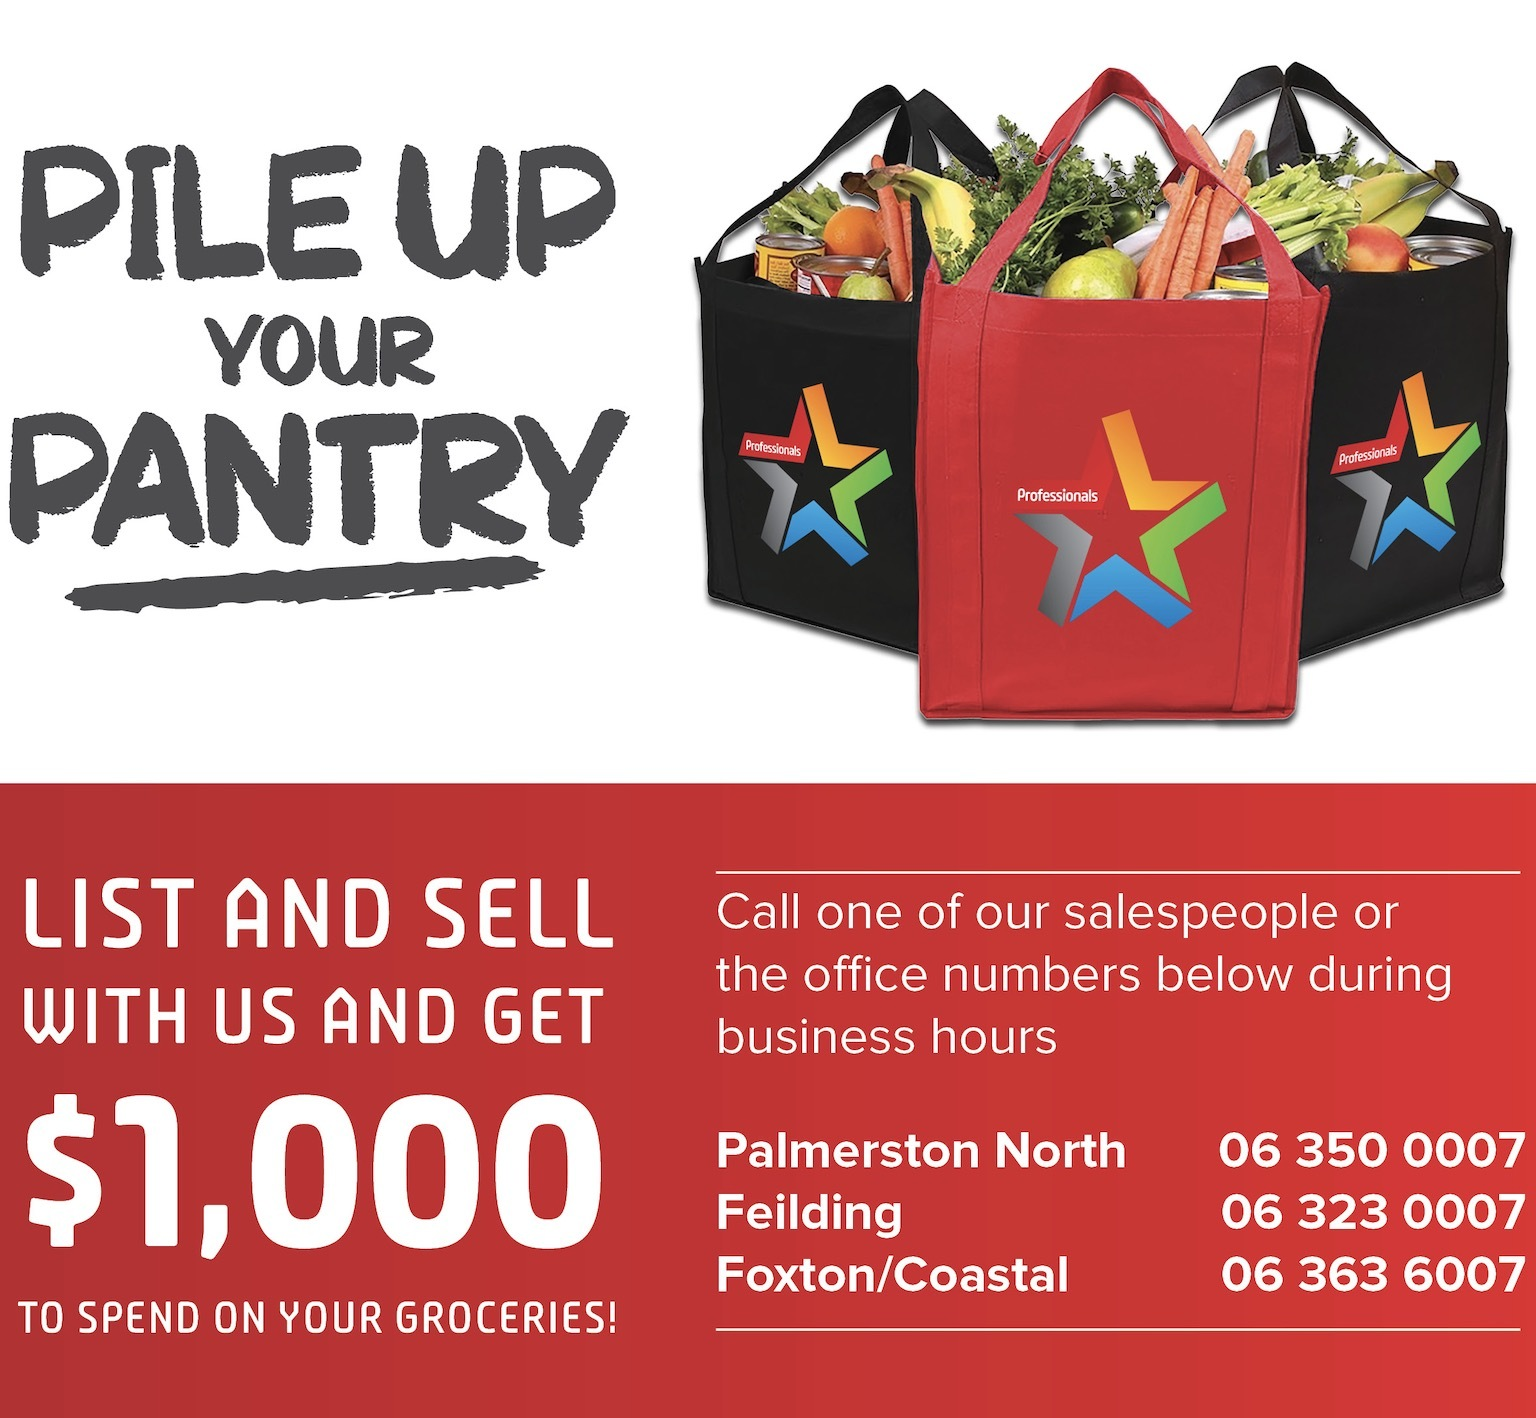 Pile up your pantry Promo